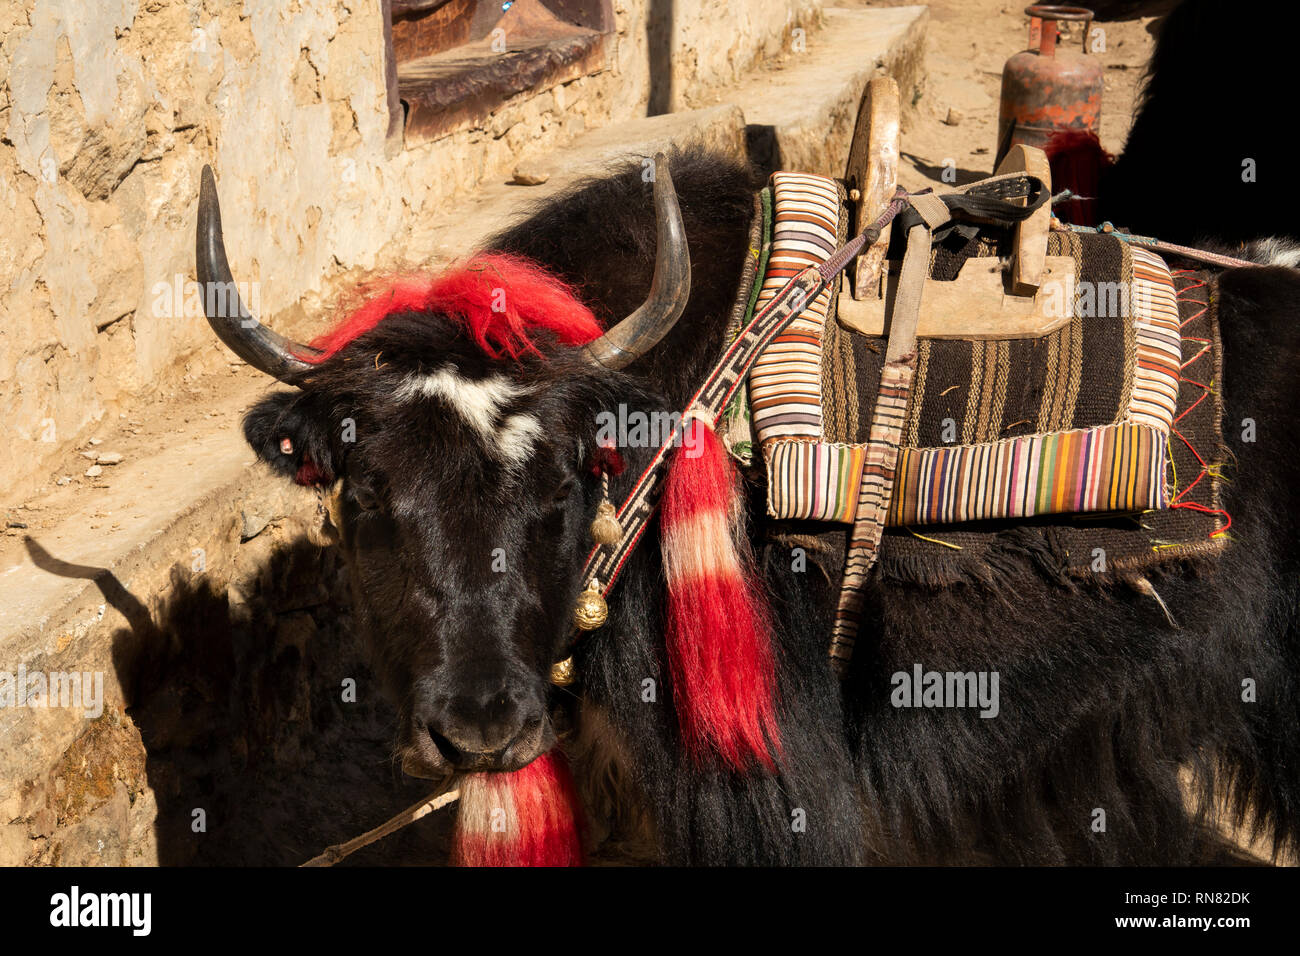 Nepal, Namche Bazaar, man loading Yak with decorated harnesses waiting to be loaded with packs - Stock Image